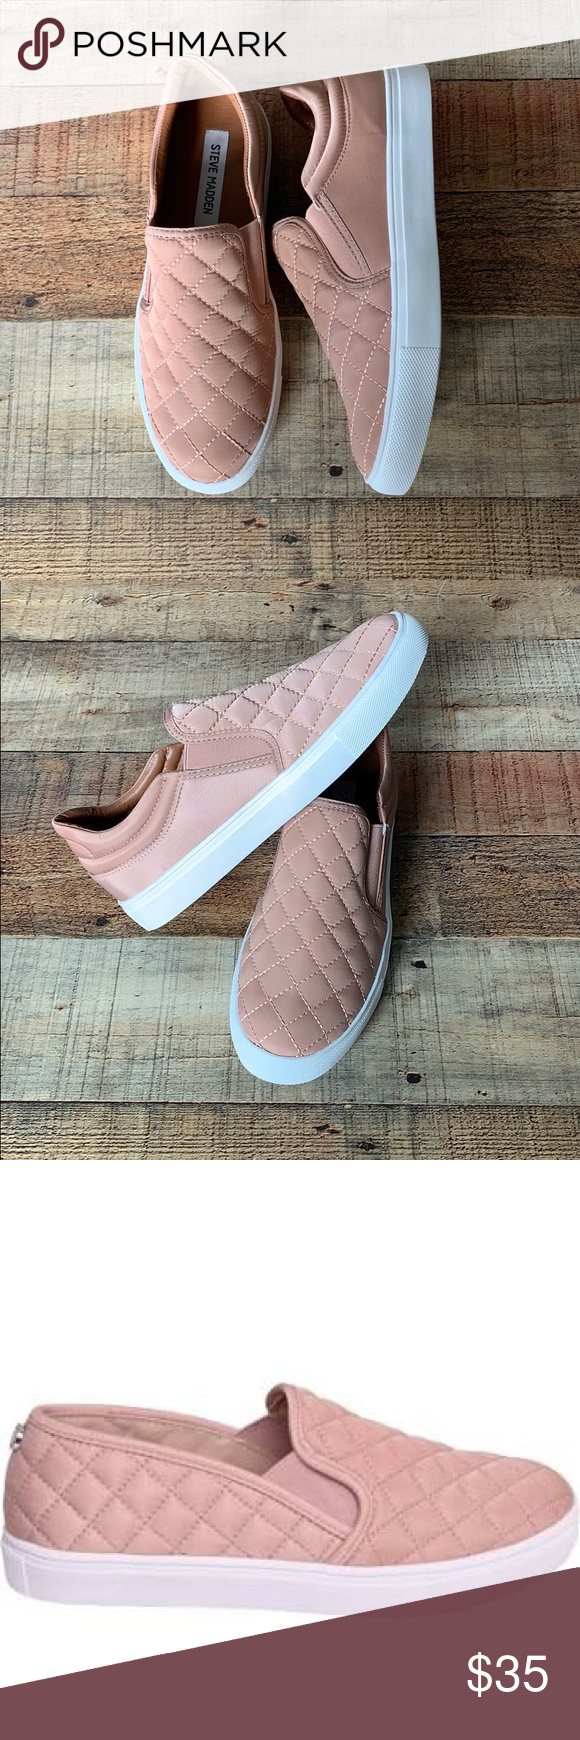 New Steve Madden Slip-On Sneakers Ew without tags Steve Madden Shoes Sneakers ,  #Madden #Sho…